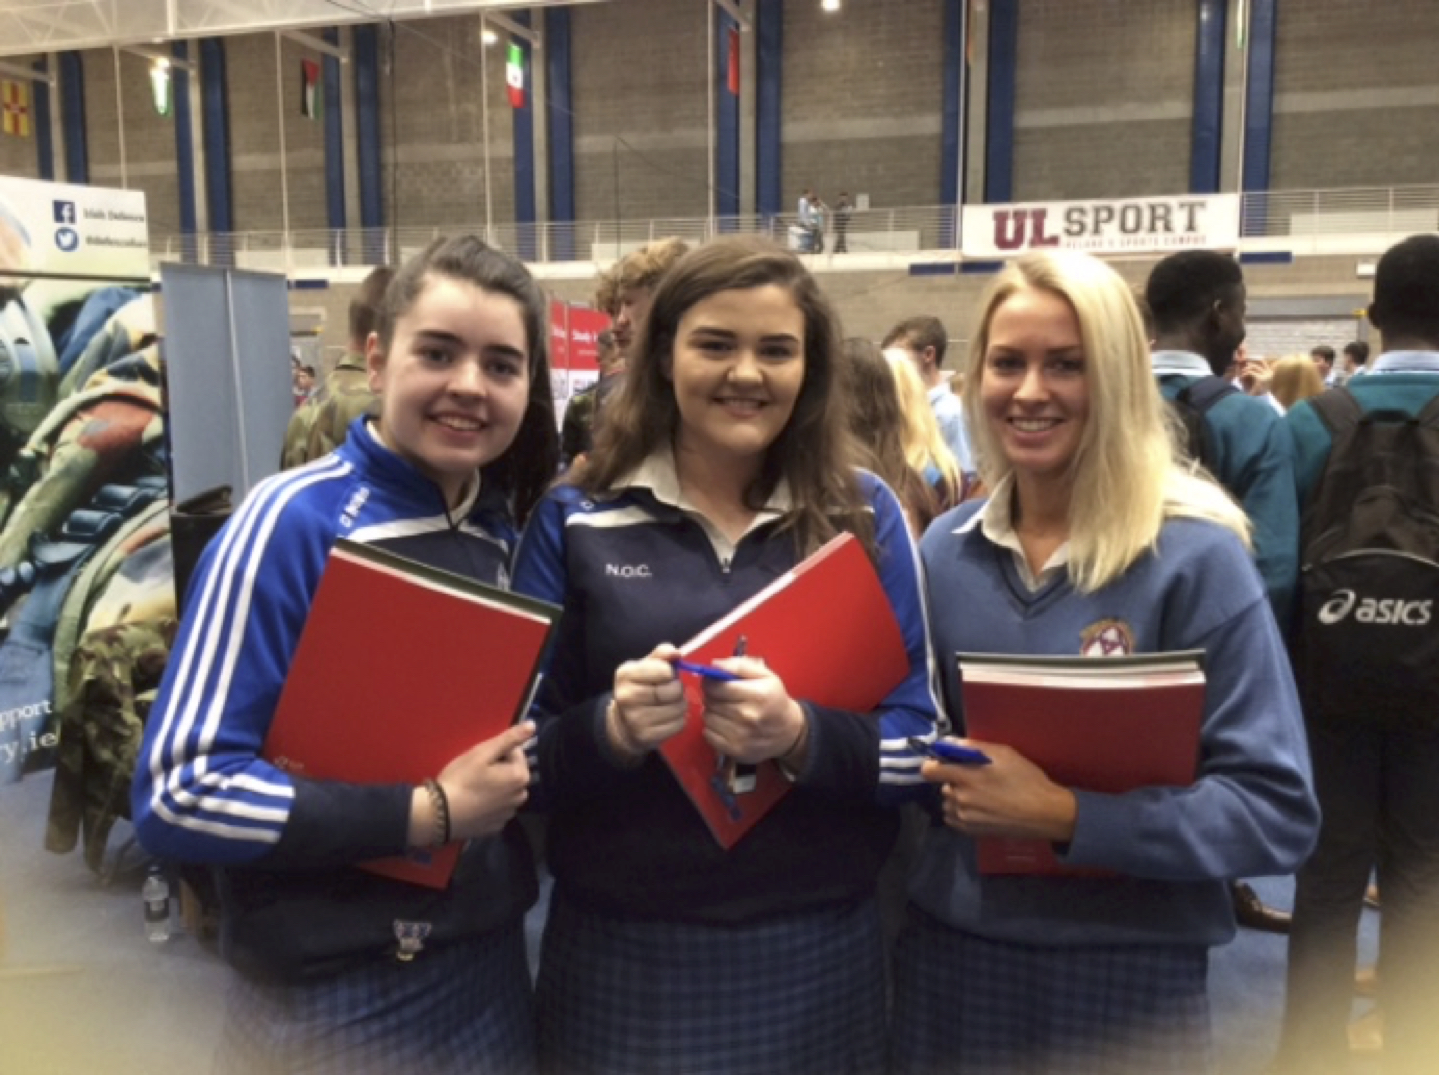 September 2017: Desmond College Leaving Certificate Students enjoying the Careers Exhibition in the University of Limerick